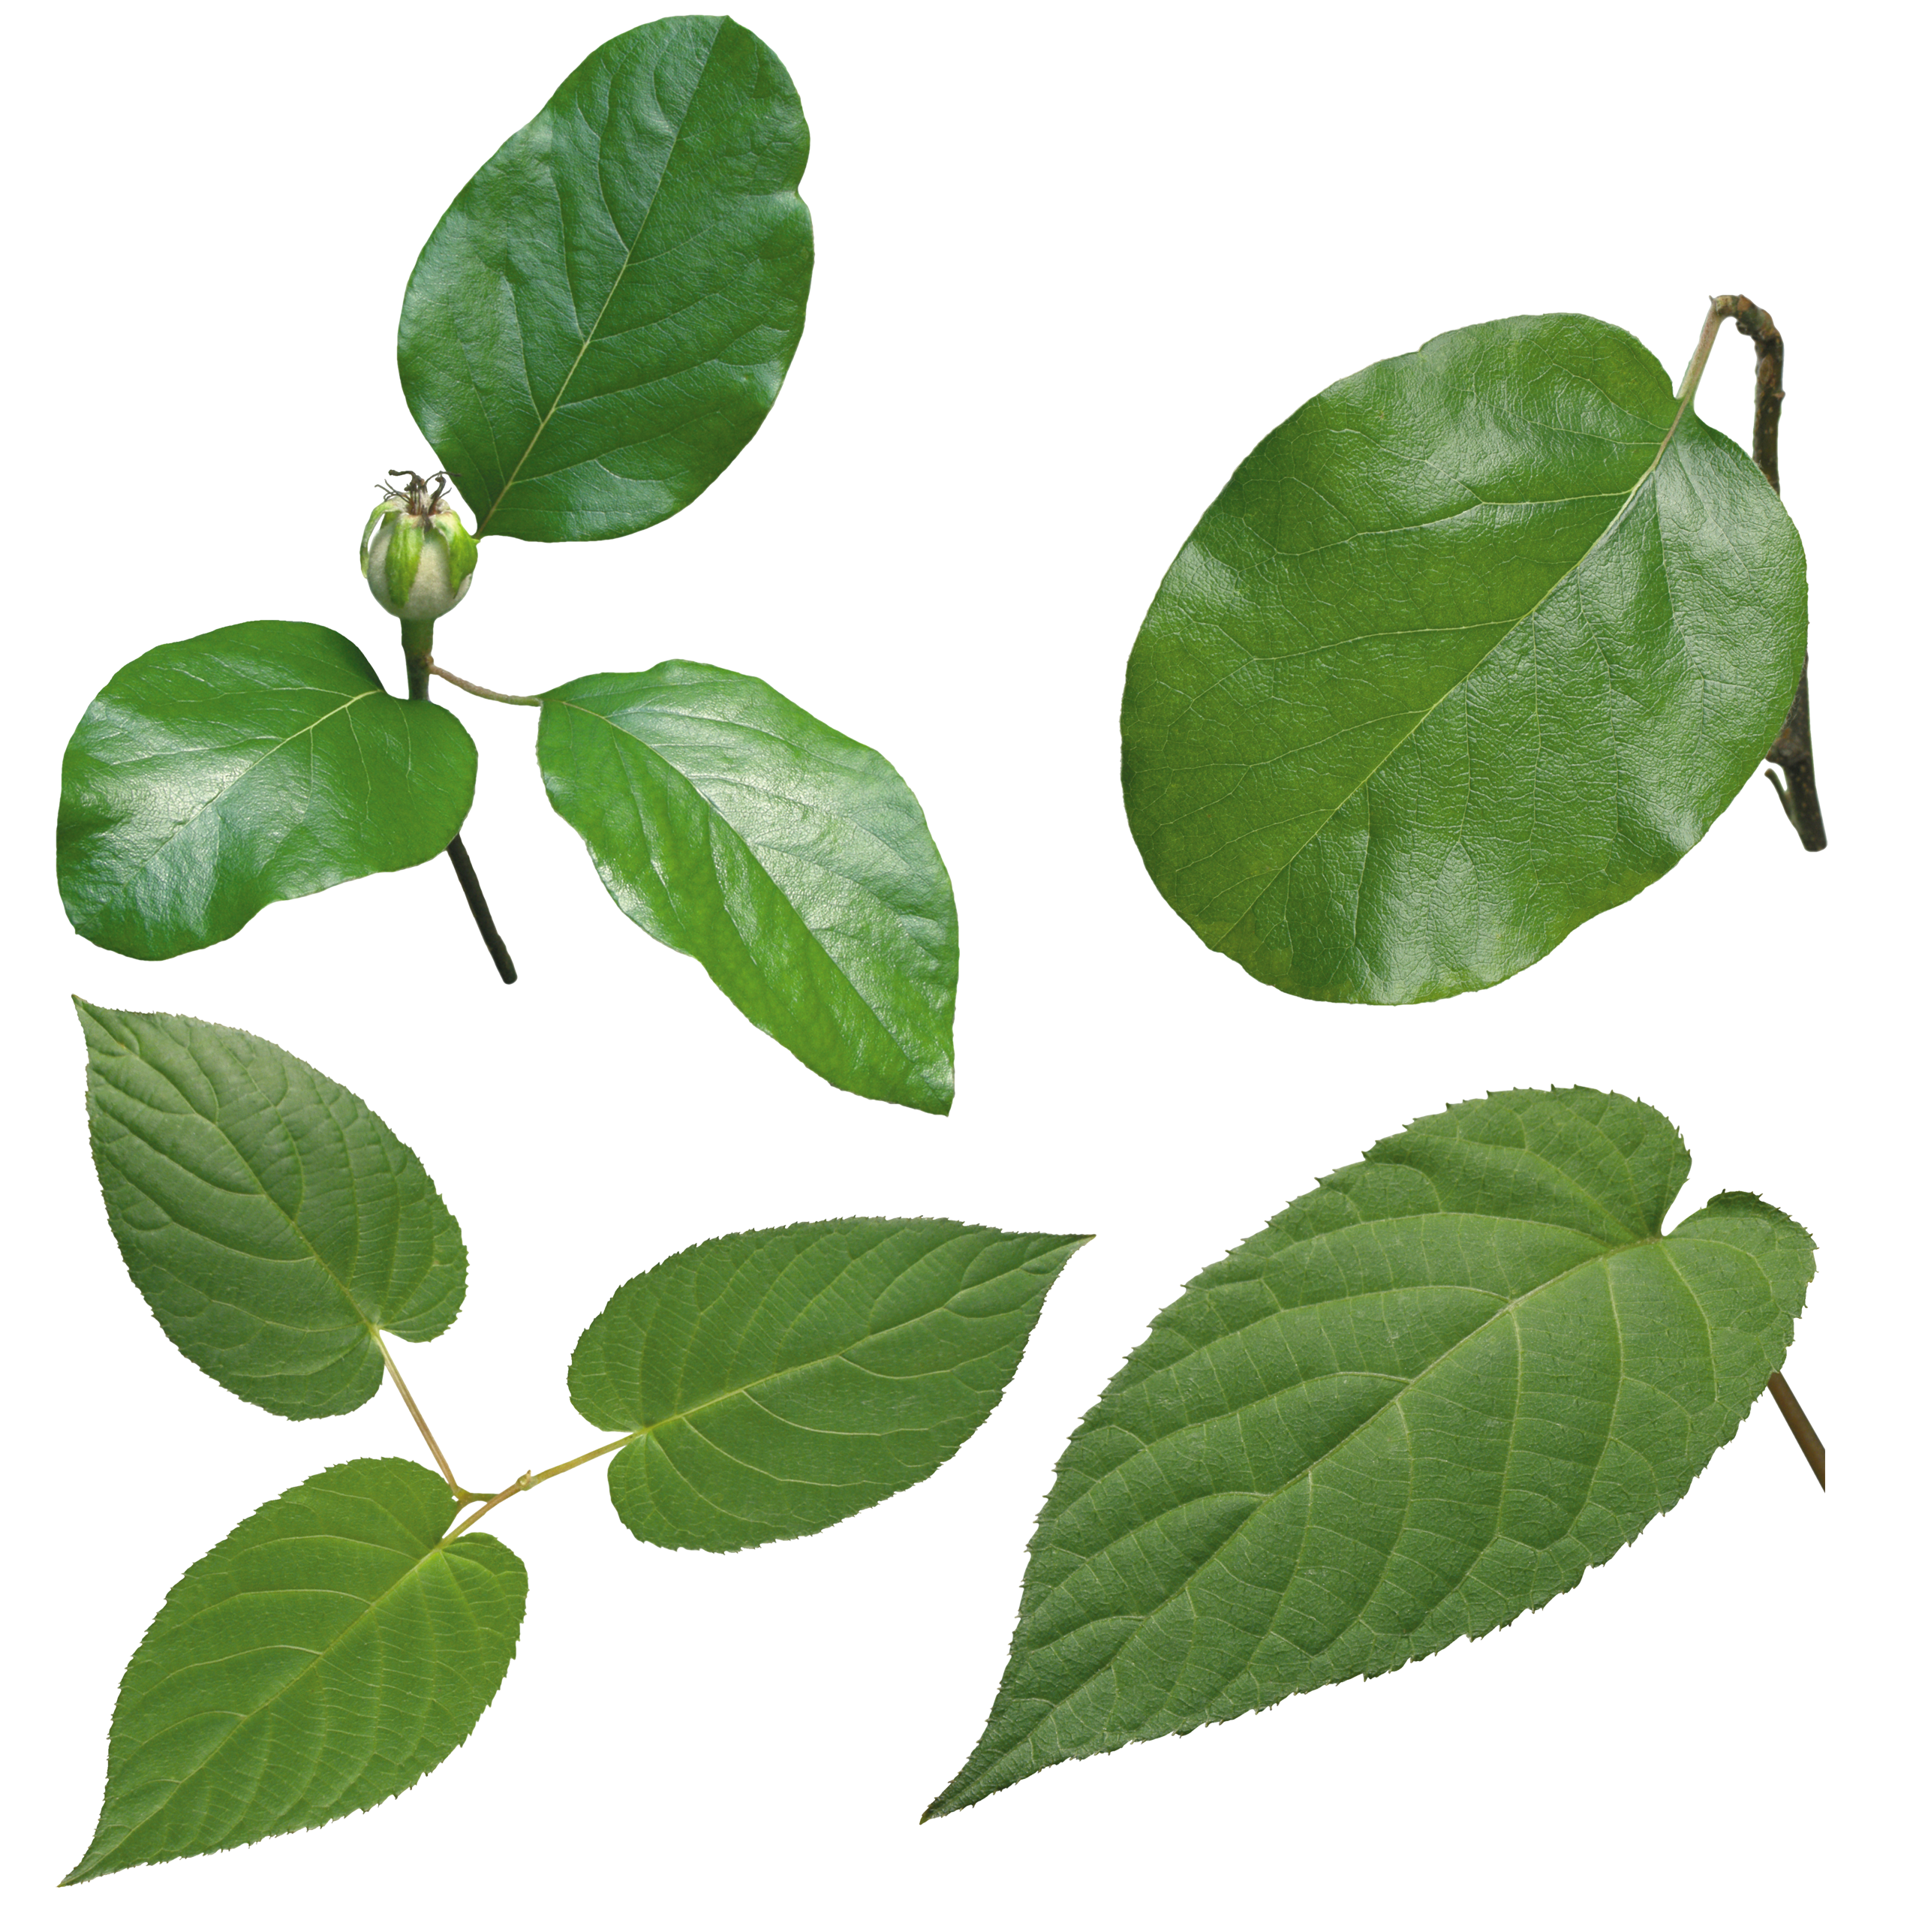 Green leaves PNG Image - PurePNG   Free transparent CC0 PNG